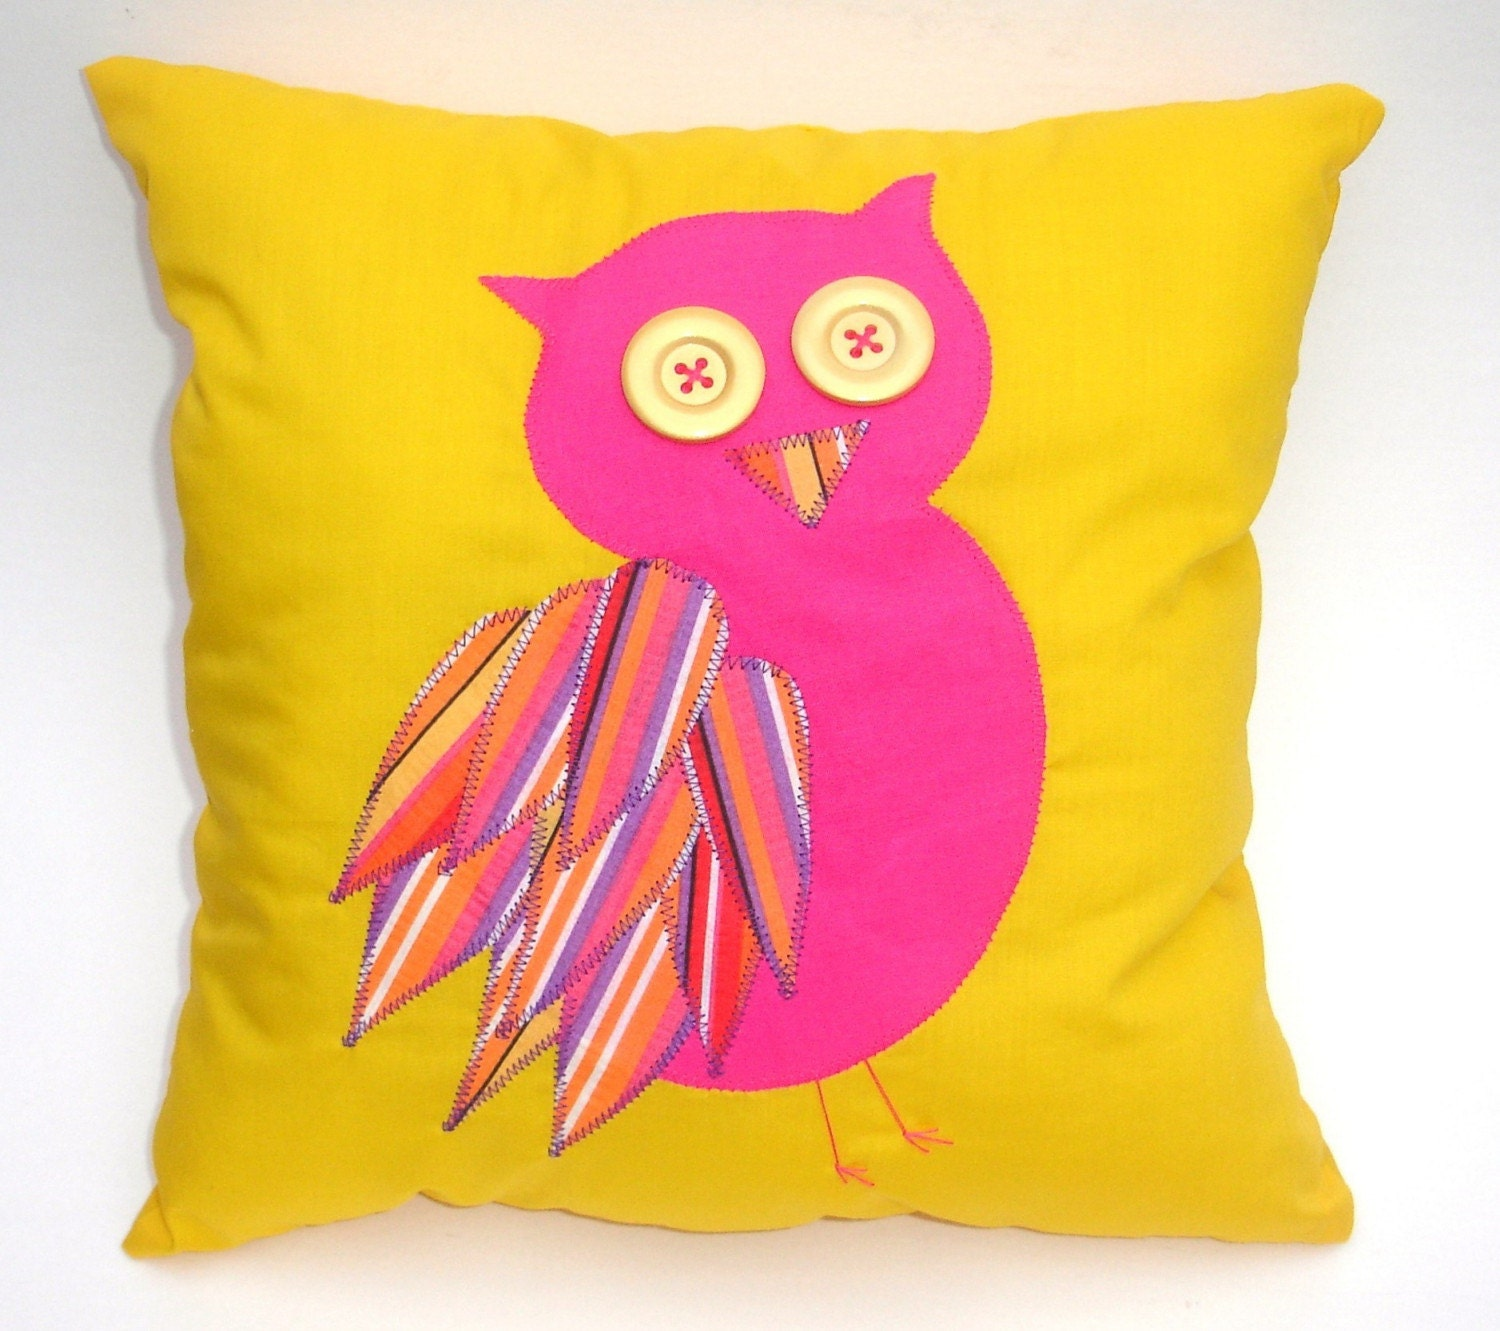 Owl Pillow - Handmade, Bright Pink Owl on Yellow Pillow with Button Eyes and Striped Feathers, Machine Appliqued